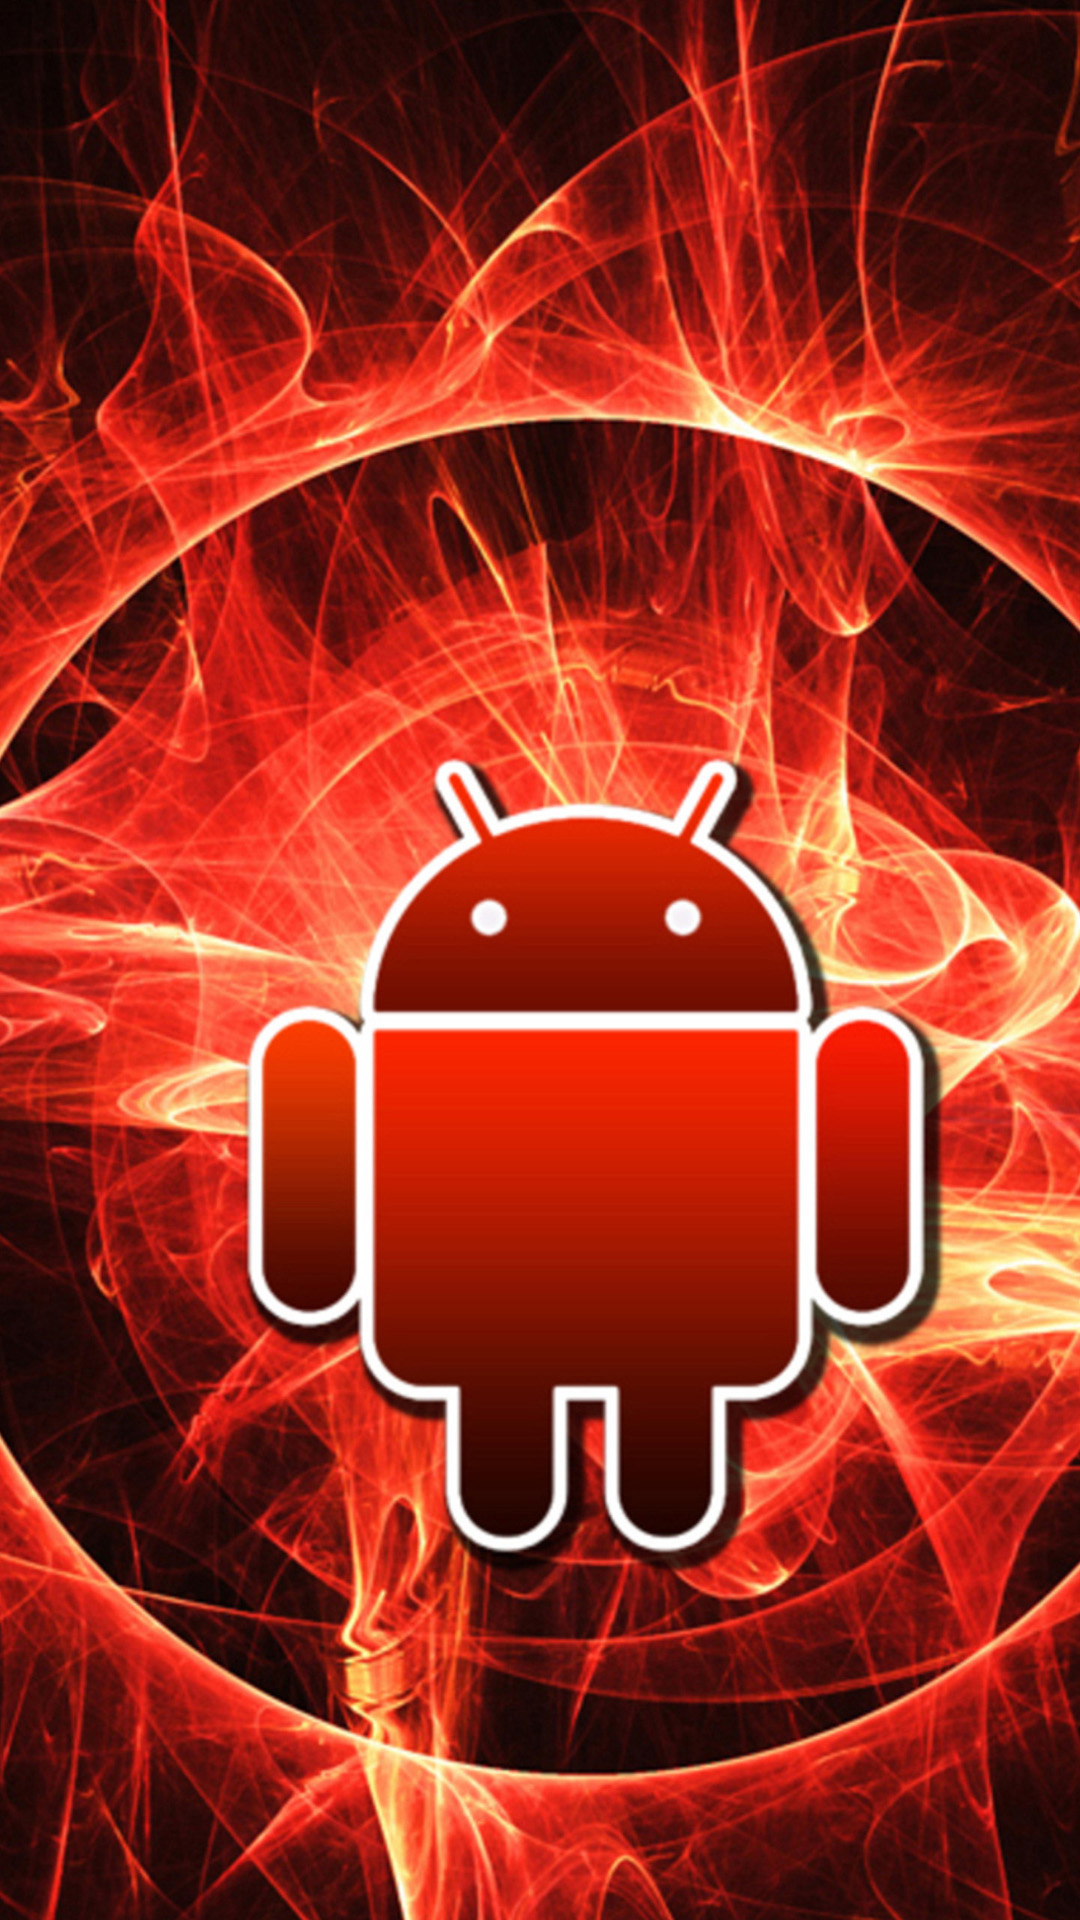 android fire smartphone wallpapers hd getphotos